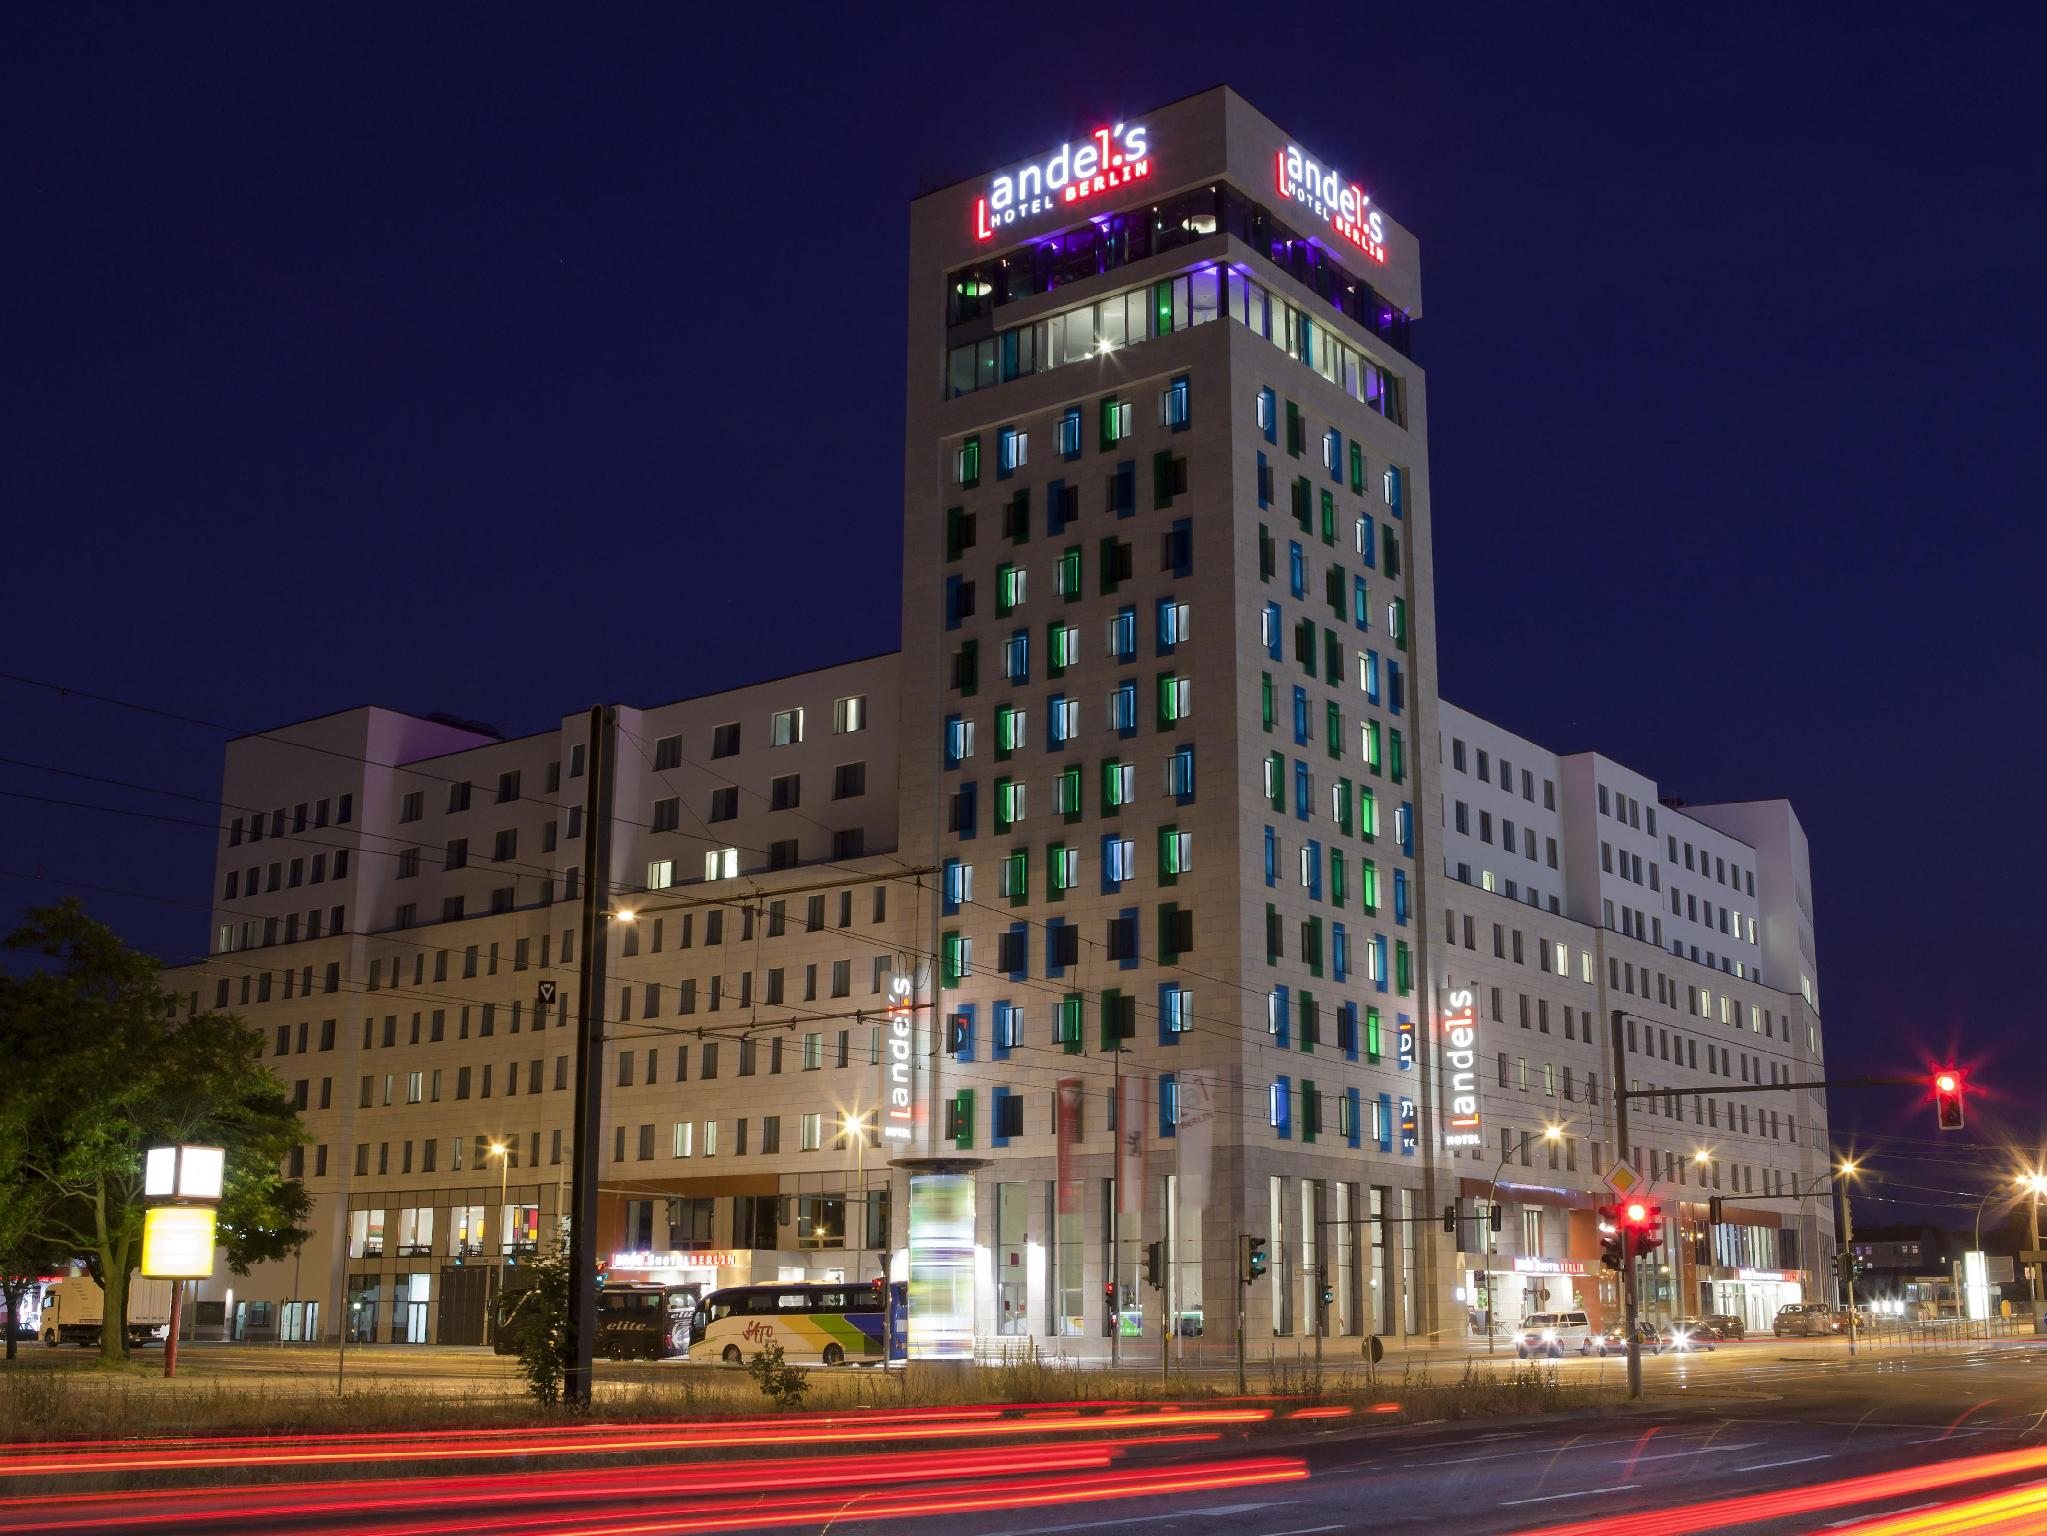 andel's Hotel Berlin, managed by Vienna International Hotels and Resorts Berlin - Vedere